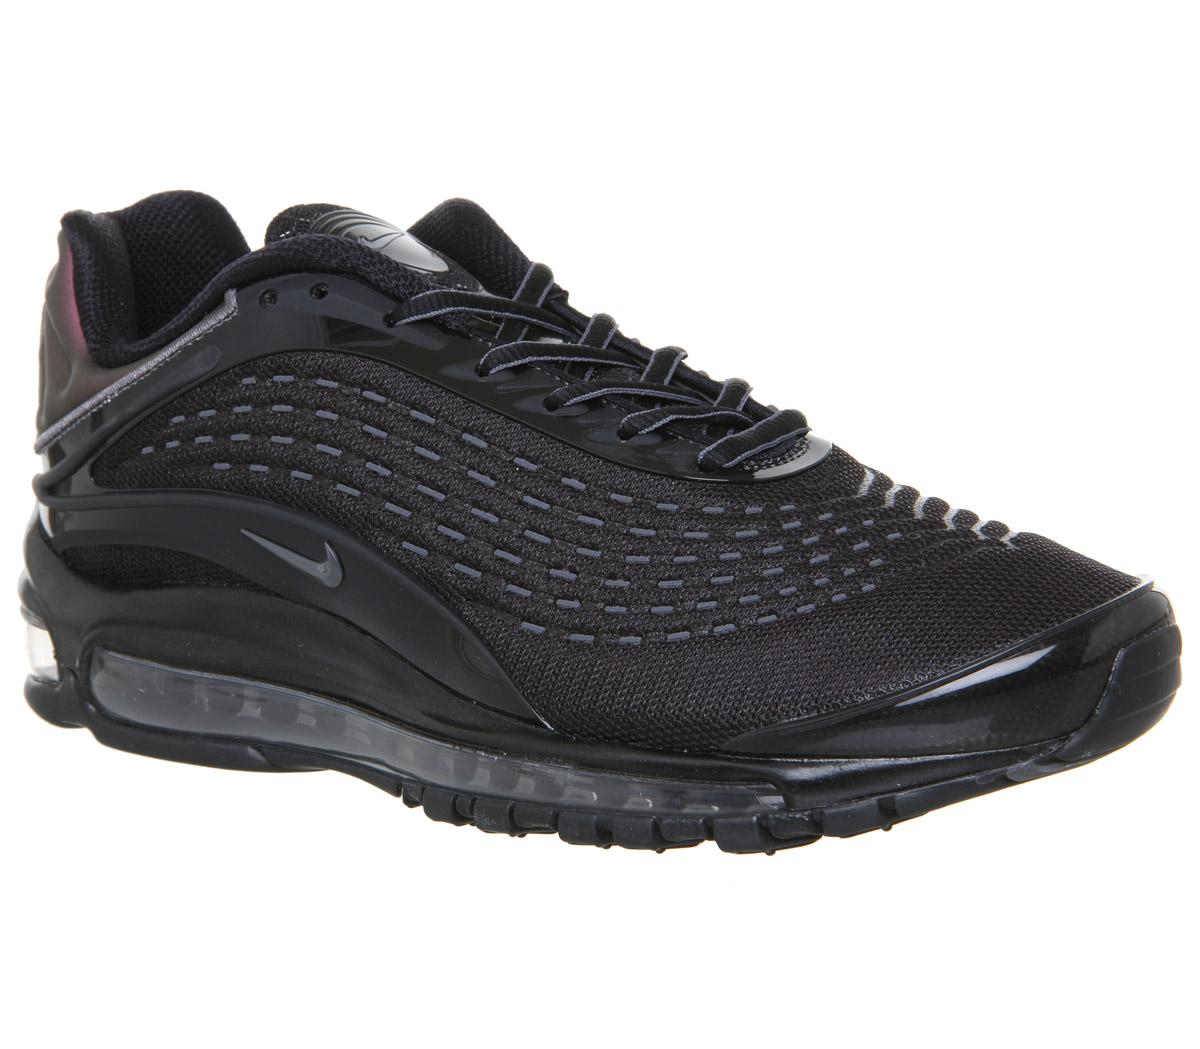 Details about NIKE AIR MAX DELUXE Trainers